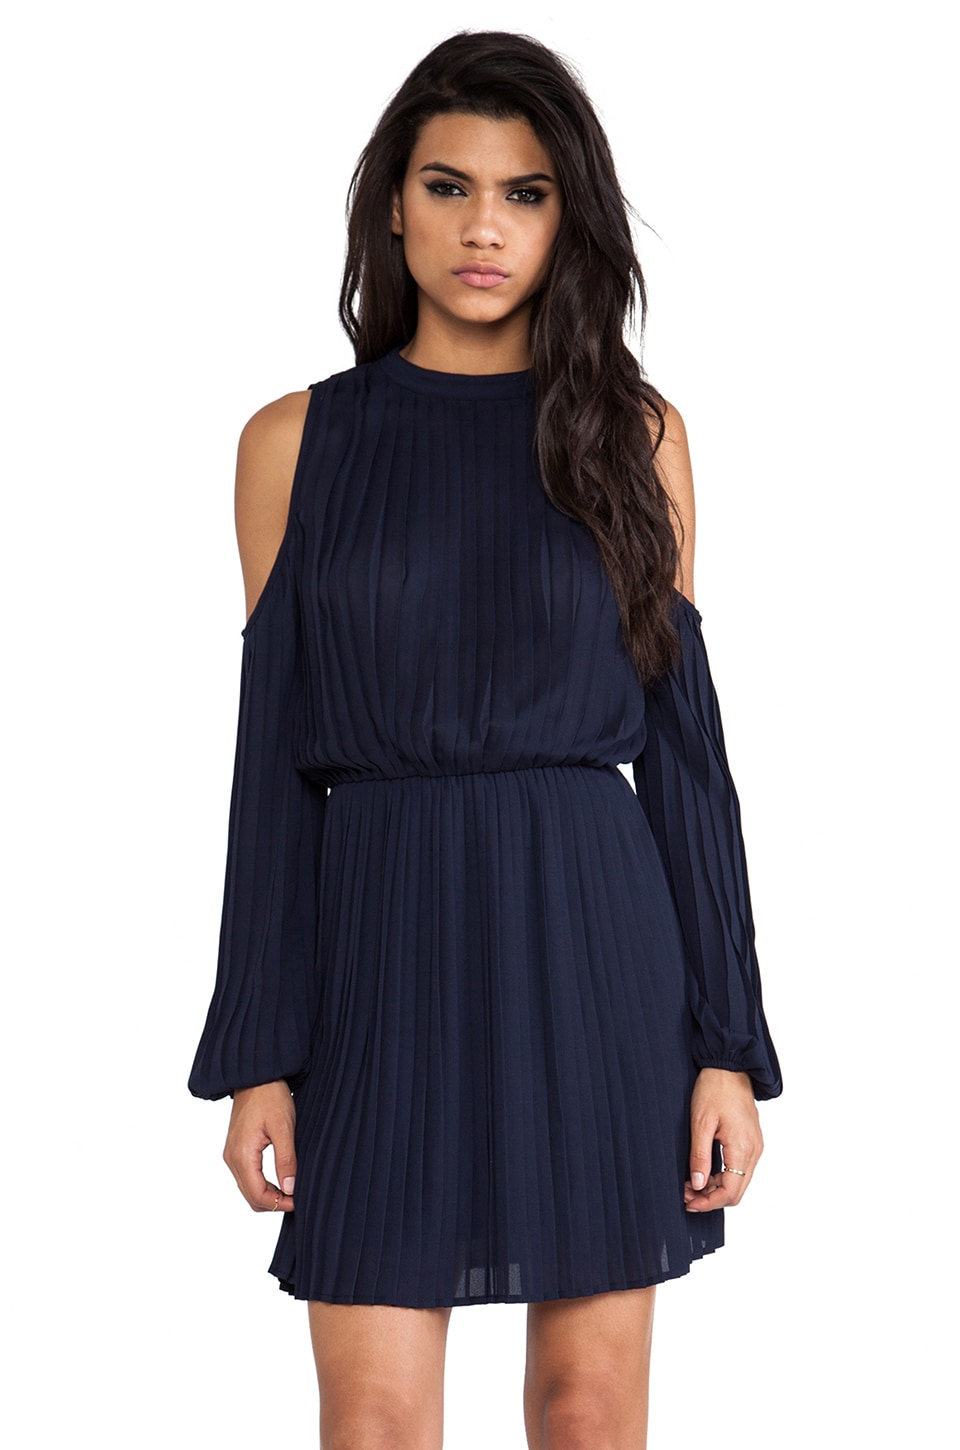 BLAQUE LABEL Dress in Navy